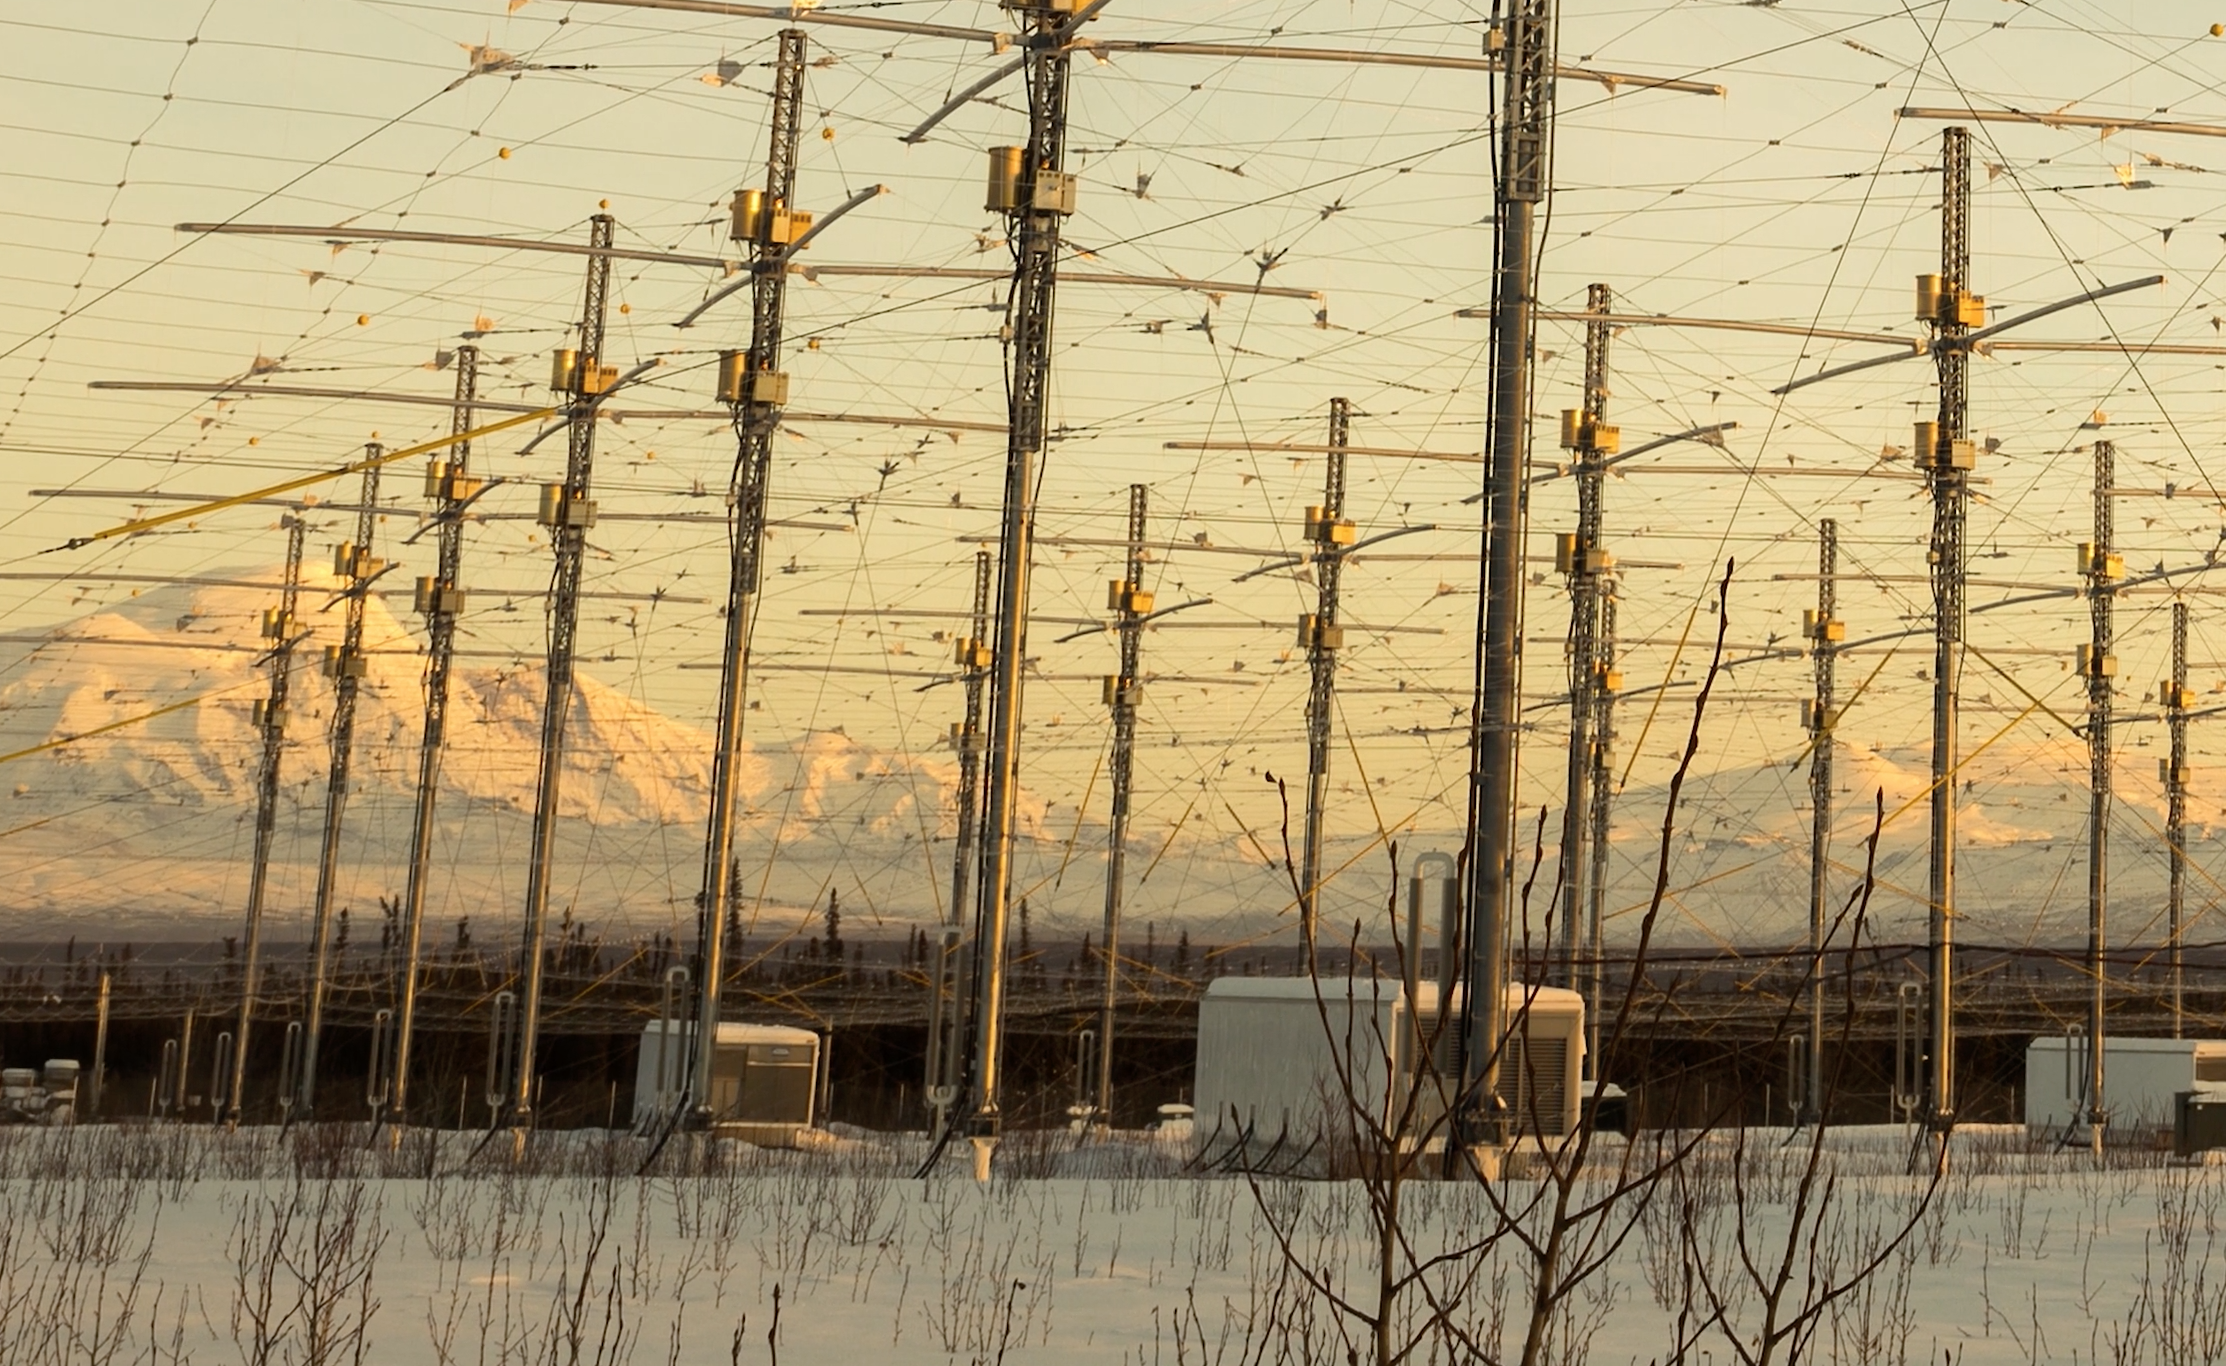 Yellow sky, wires and poles, snow on the ground, snowy mountains in distance.